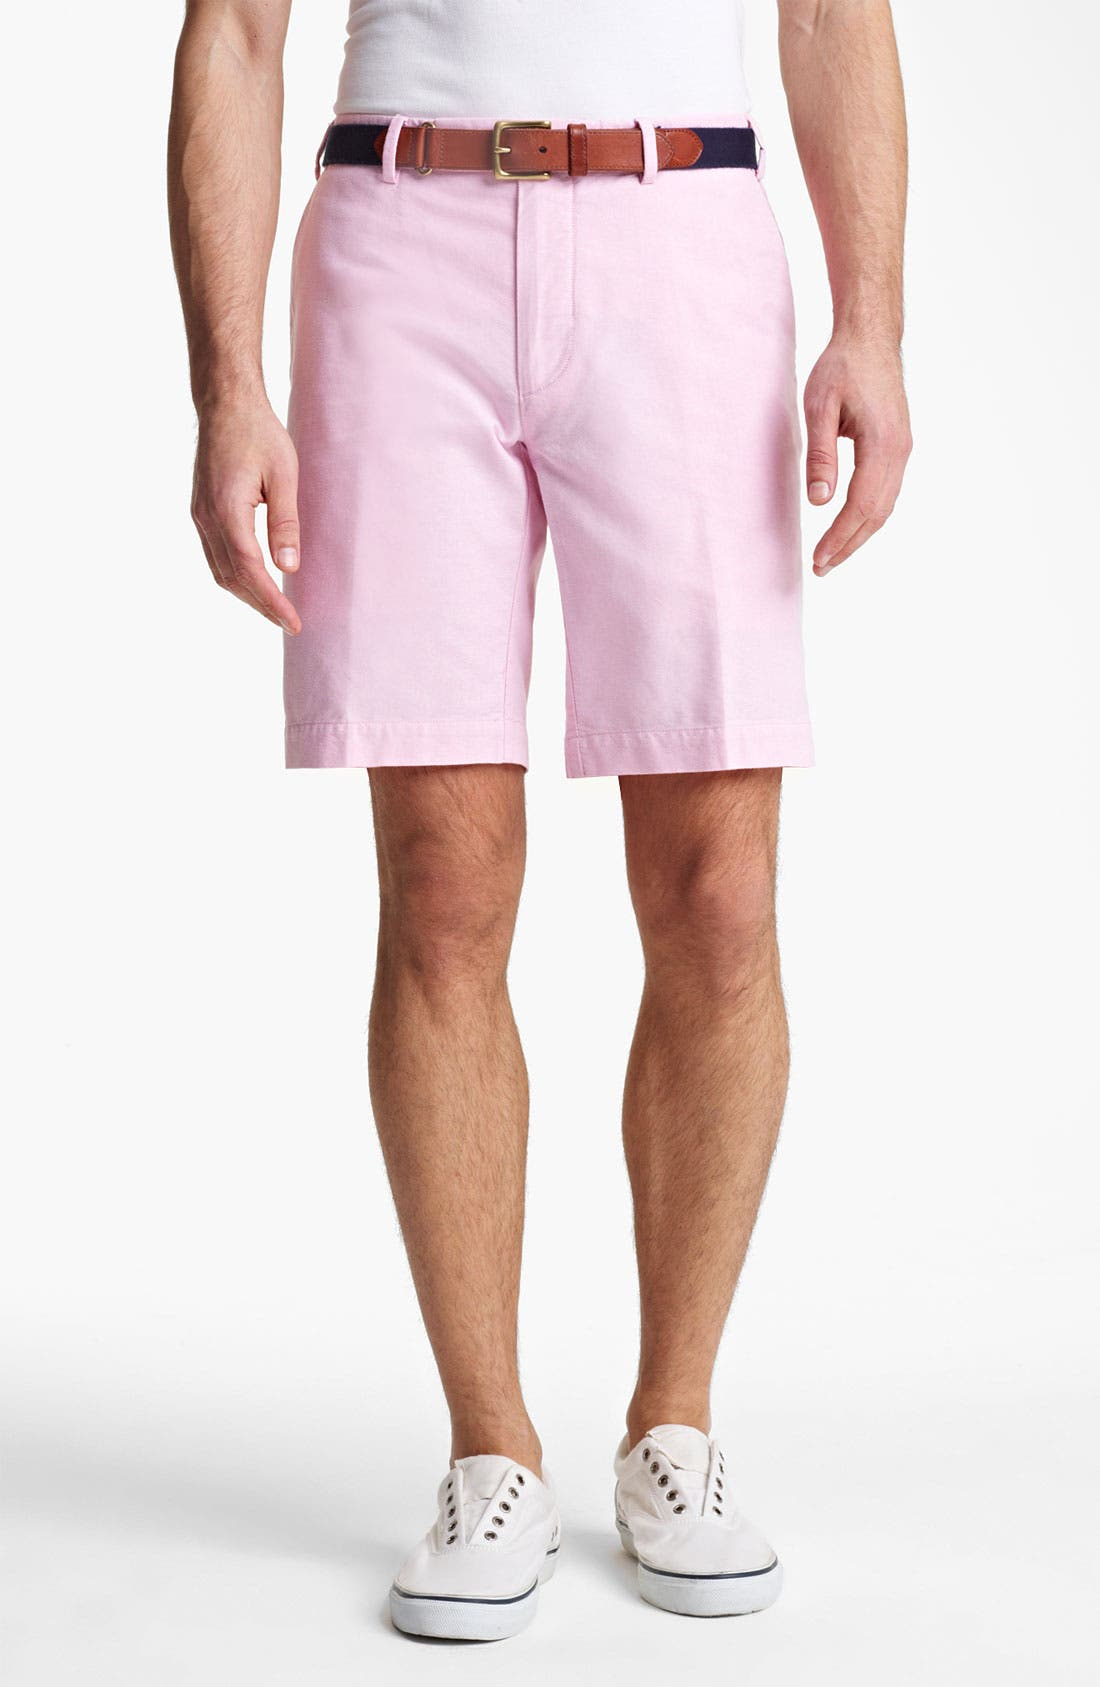 Alternate Image 1 Selected - Polo Ralph Lauren 'Clubhouse' Shorts